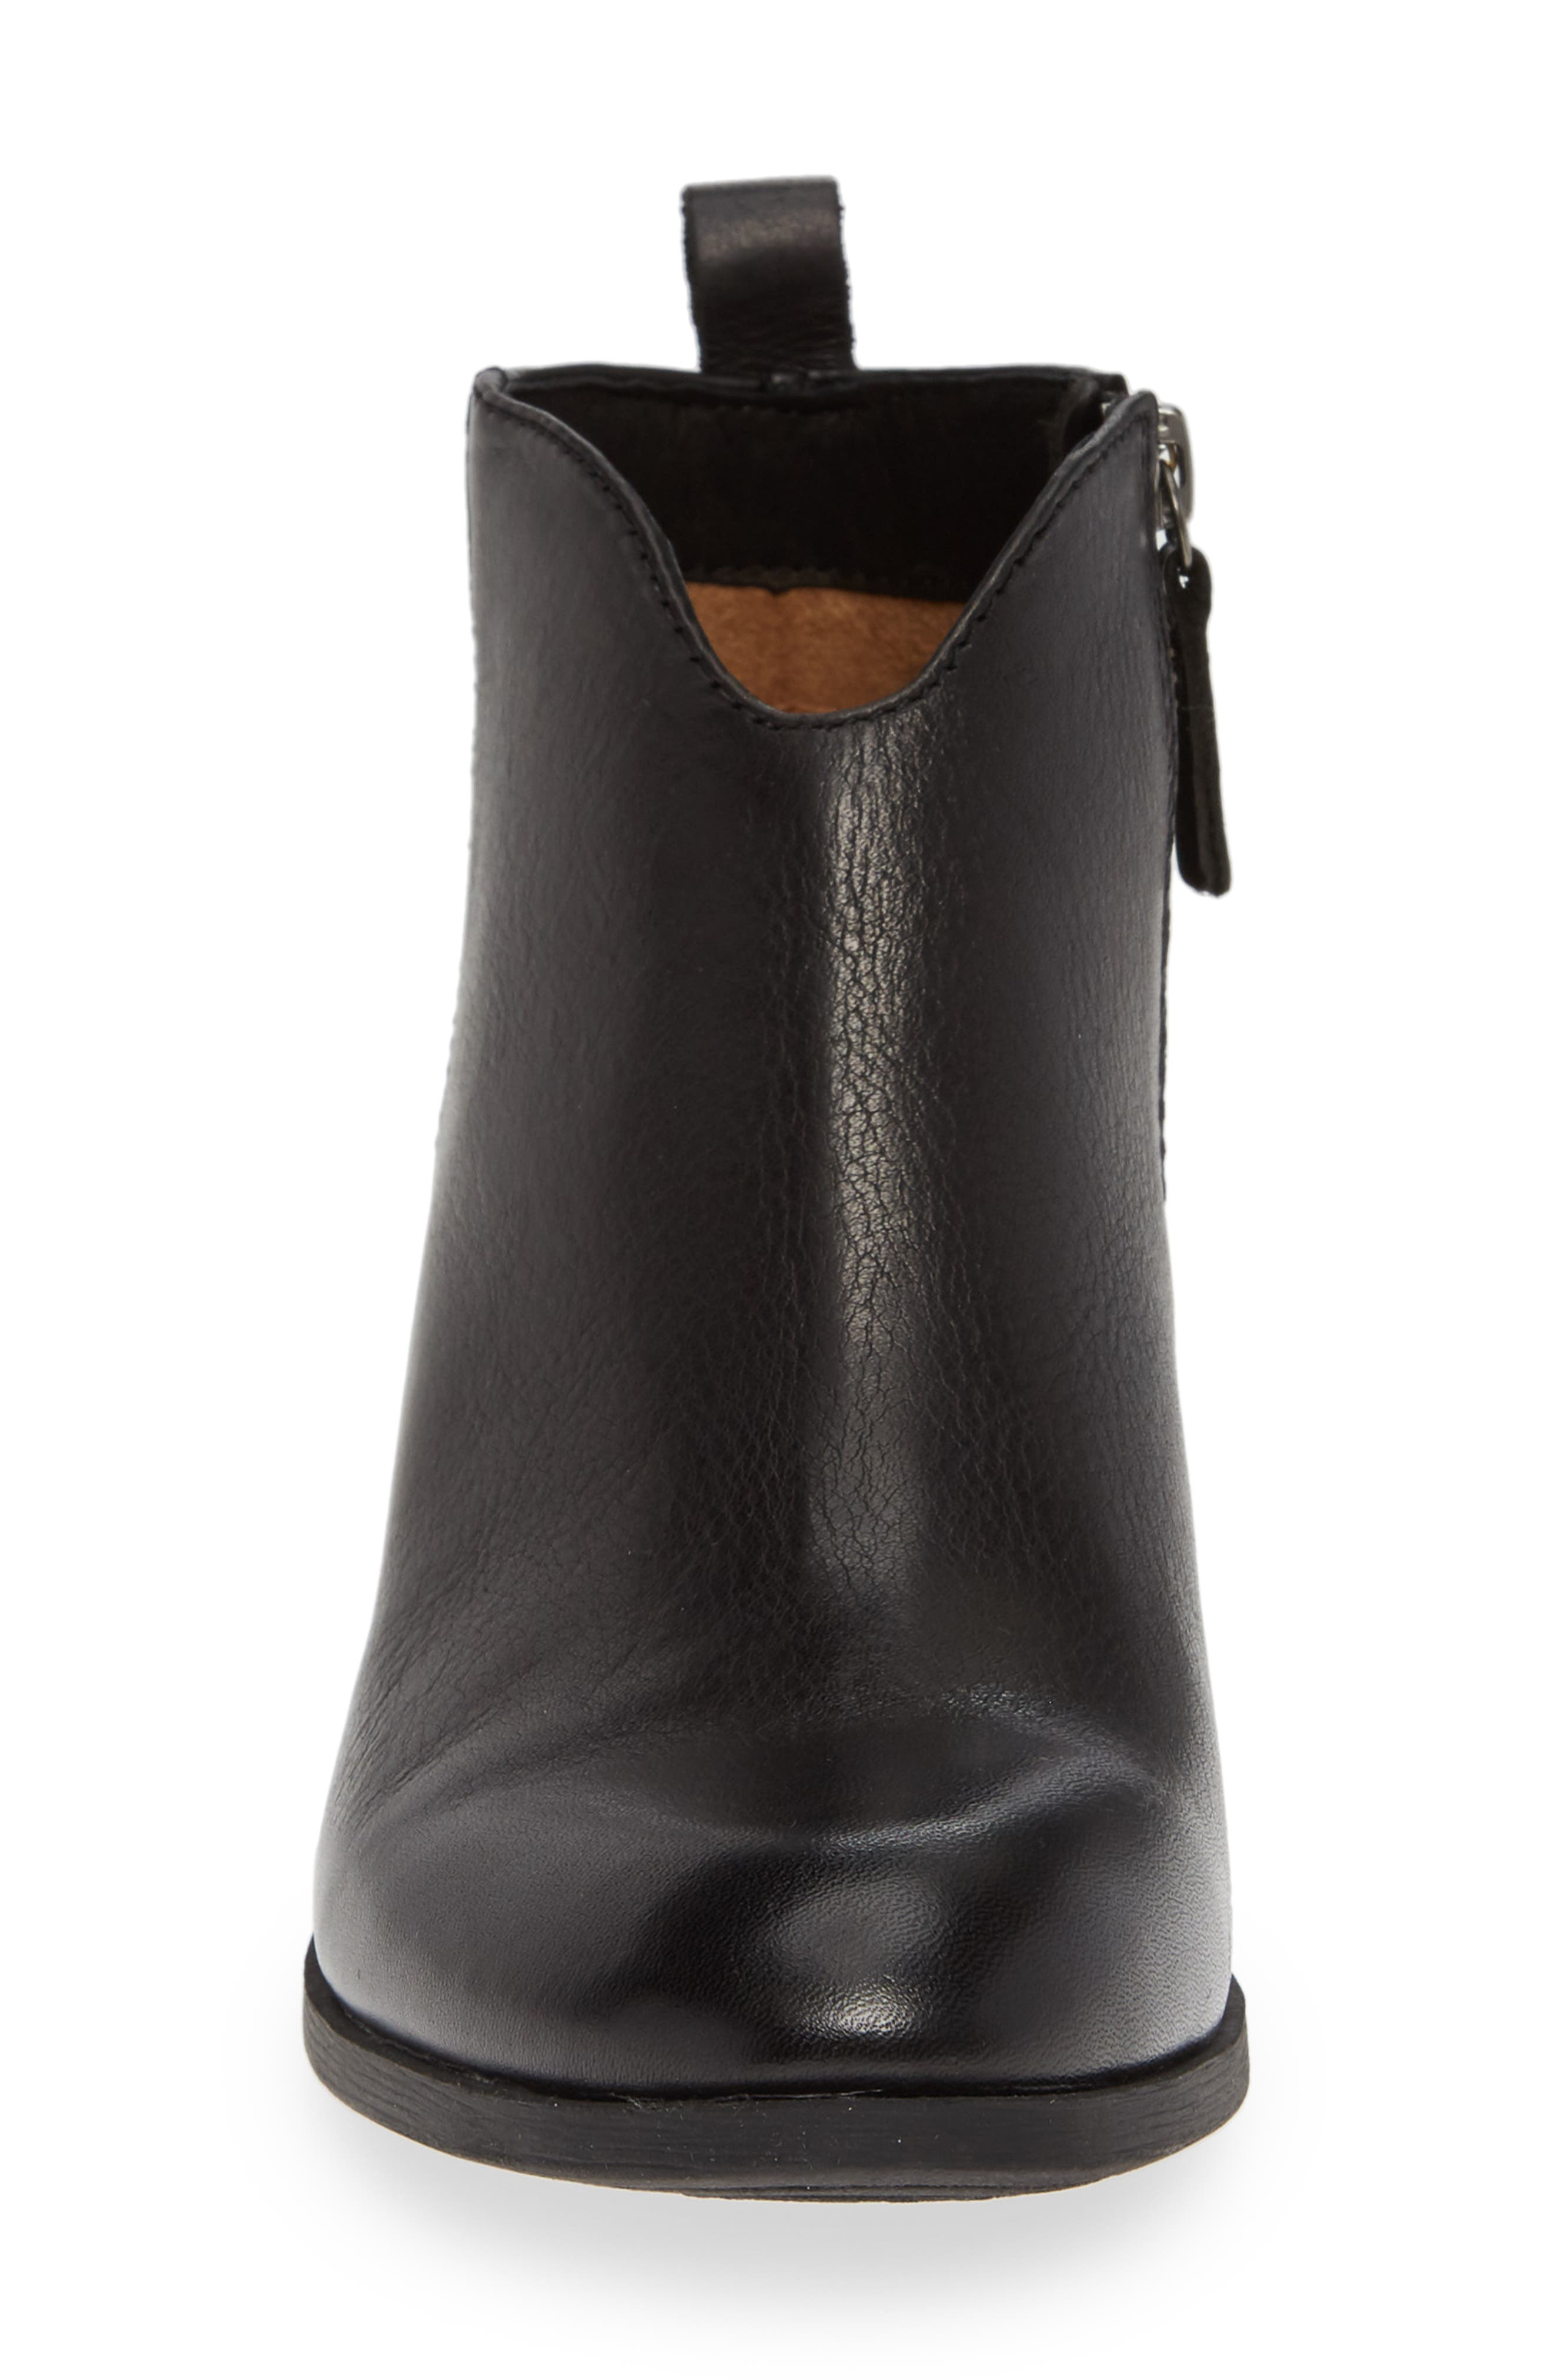 Coleta Bootie,                             Alternate thumbnail 4, color,                             BLACK LEATHER